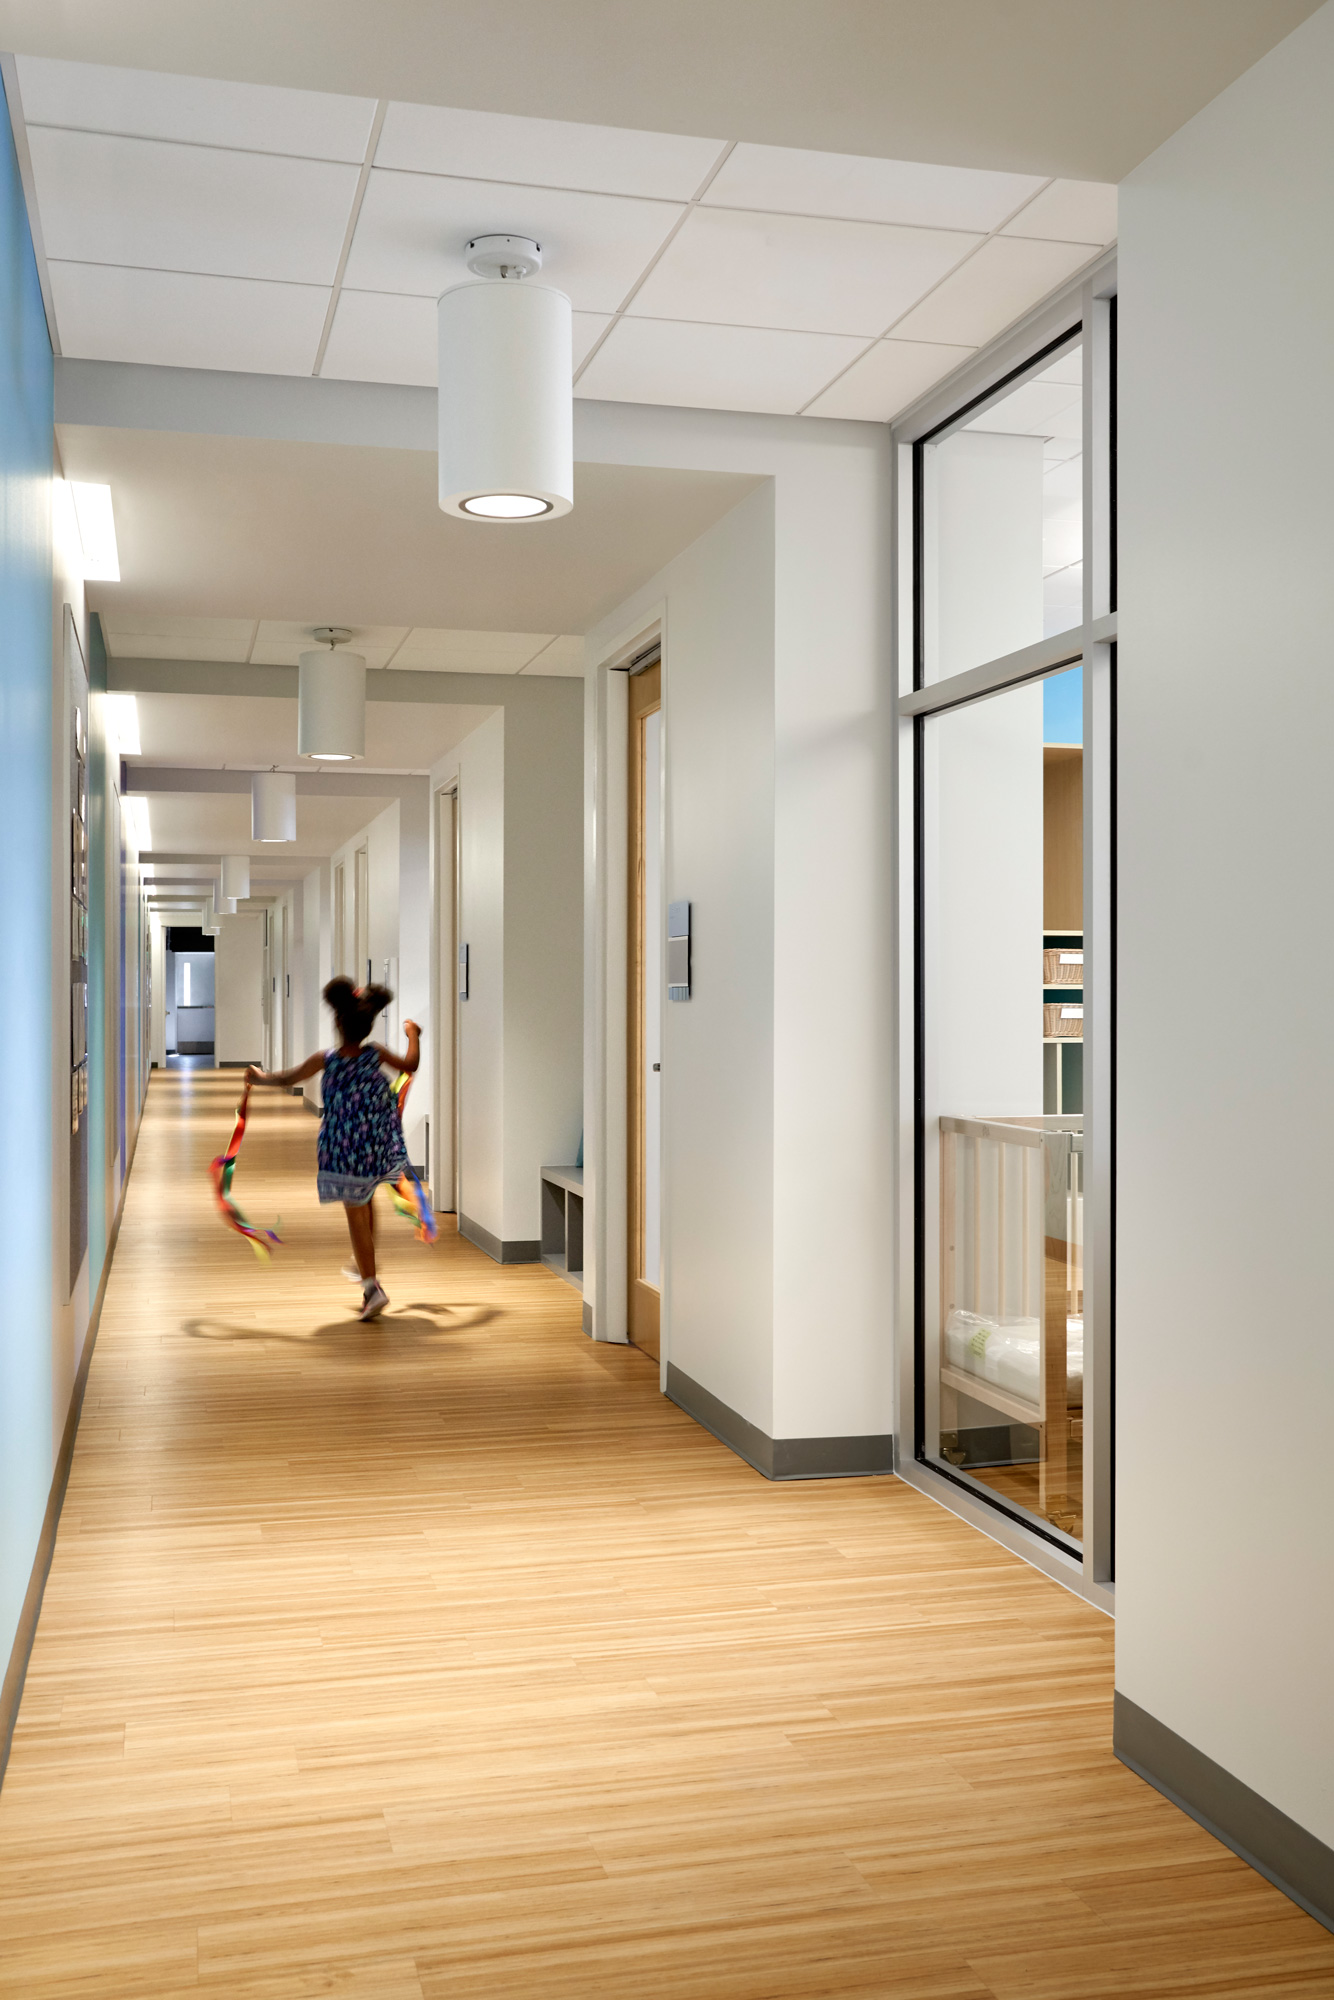 Architectural-Photograph-of-HCA-Childcare-Center-in-Nashville-Tennessee-by-Architectural-Photographer-Nick-McGinn-9.web.jpg